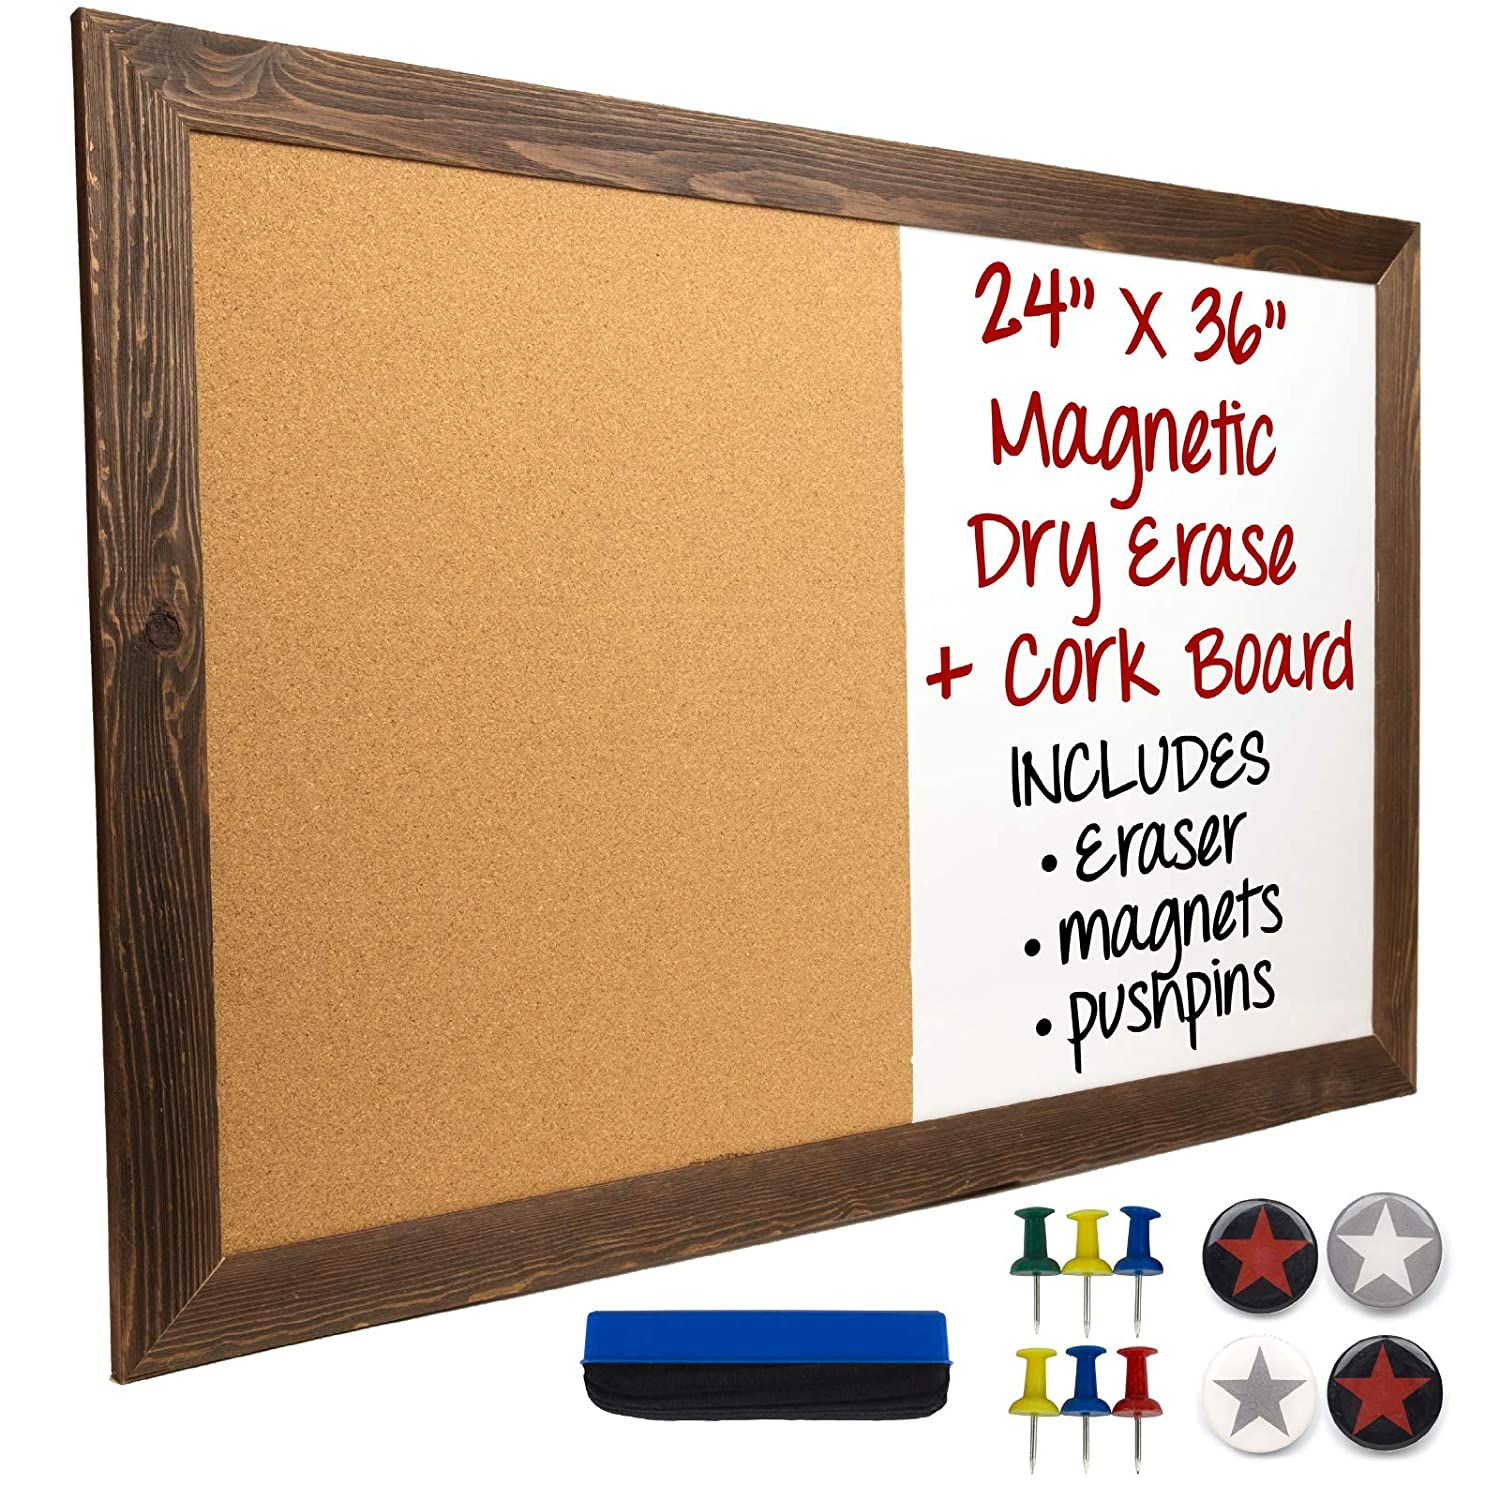 "Dry Erase Cork Board Combo: Magnetic White Board with Cork Bulletin & Rustic Wooden Frame for Home, School, Office - 24""x36"""